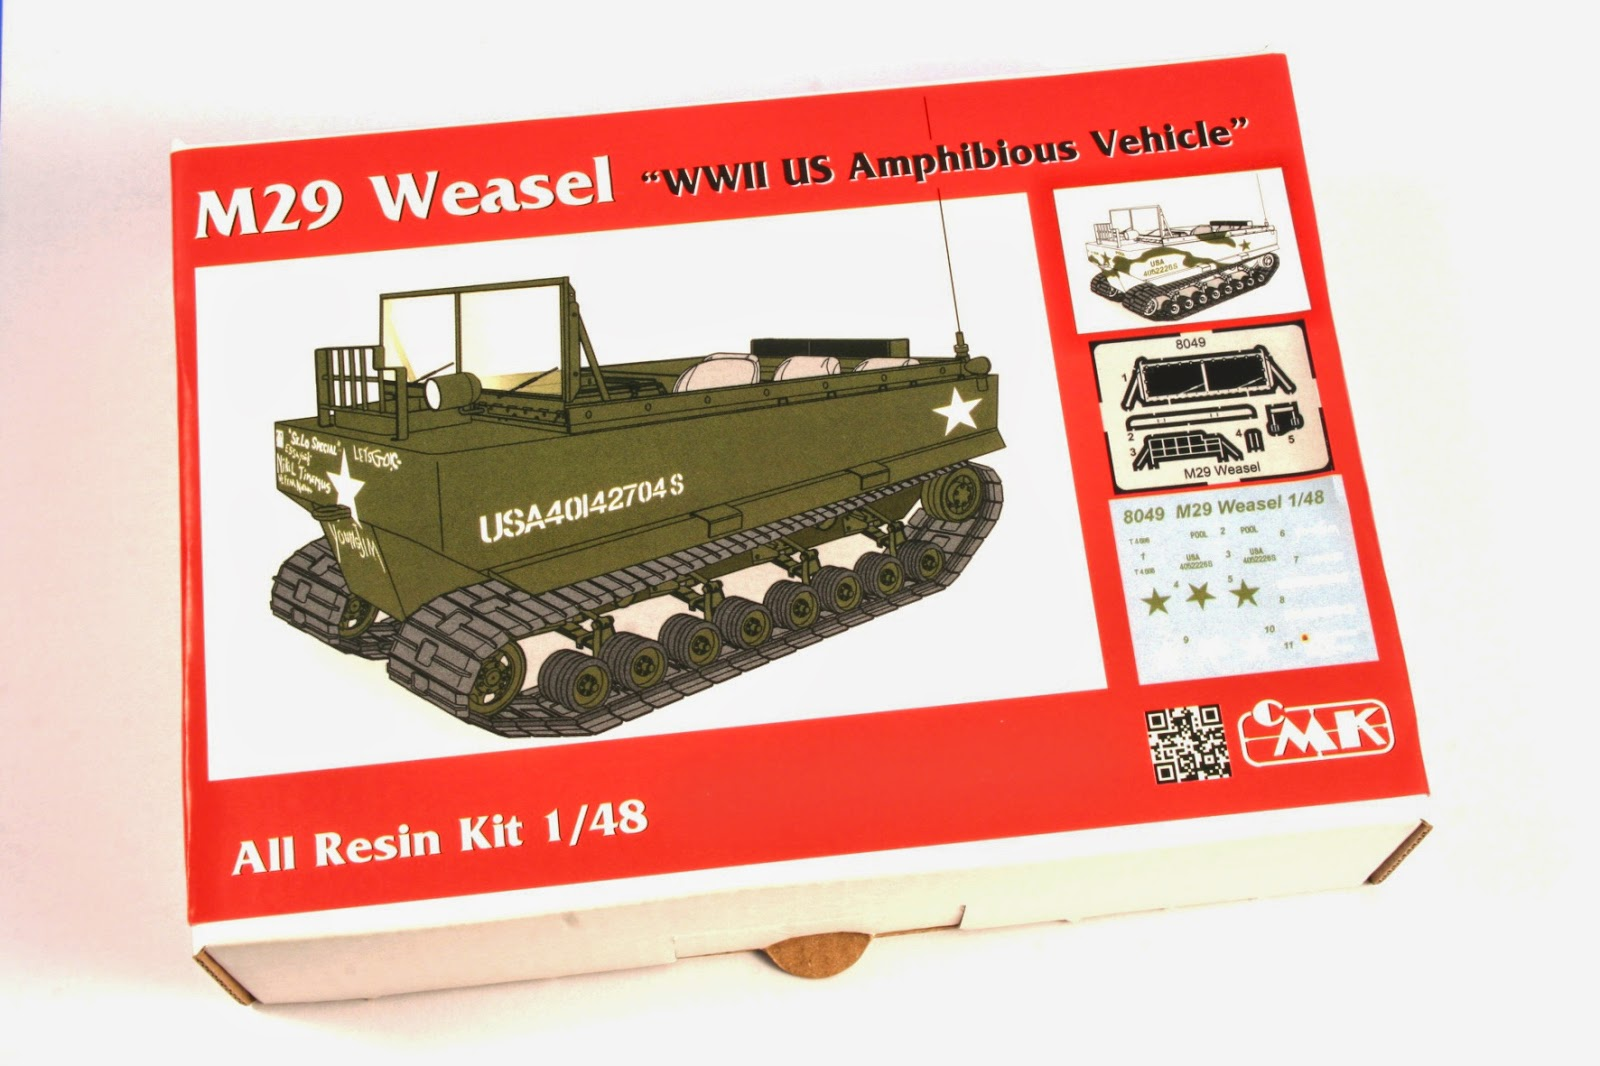 special hobby en m29 weasel cmk resin kit no 8049 in 1 48 unveiled piece of wire slight shape correction of the seats and a glass added to both of the lights tamiya paints were used and also mig weathering products